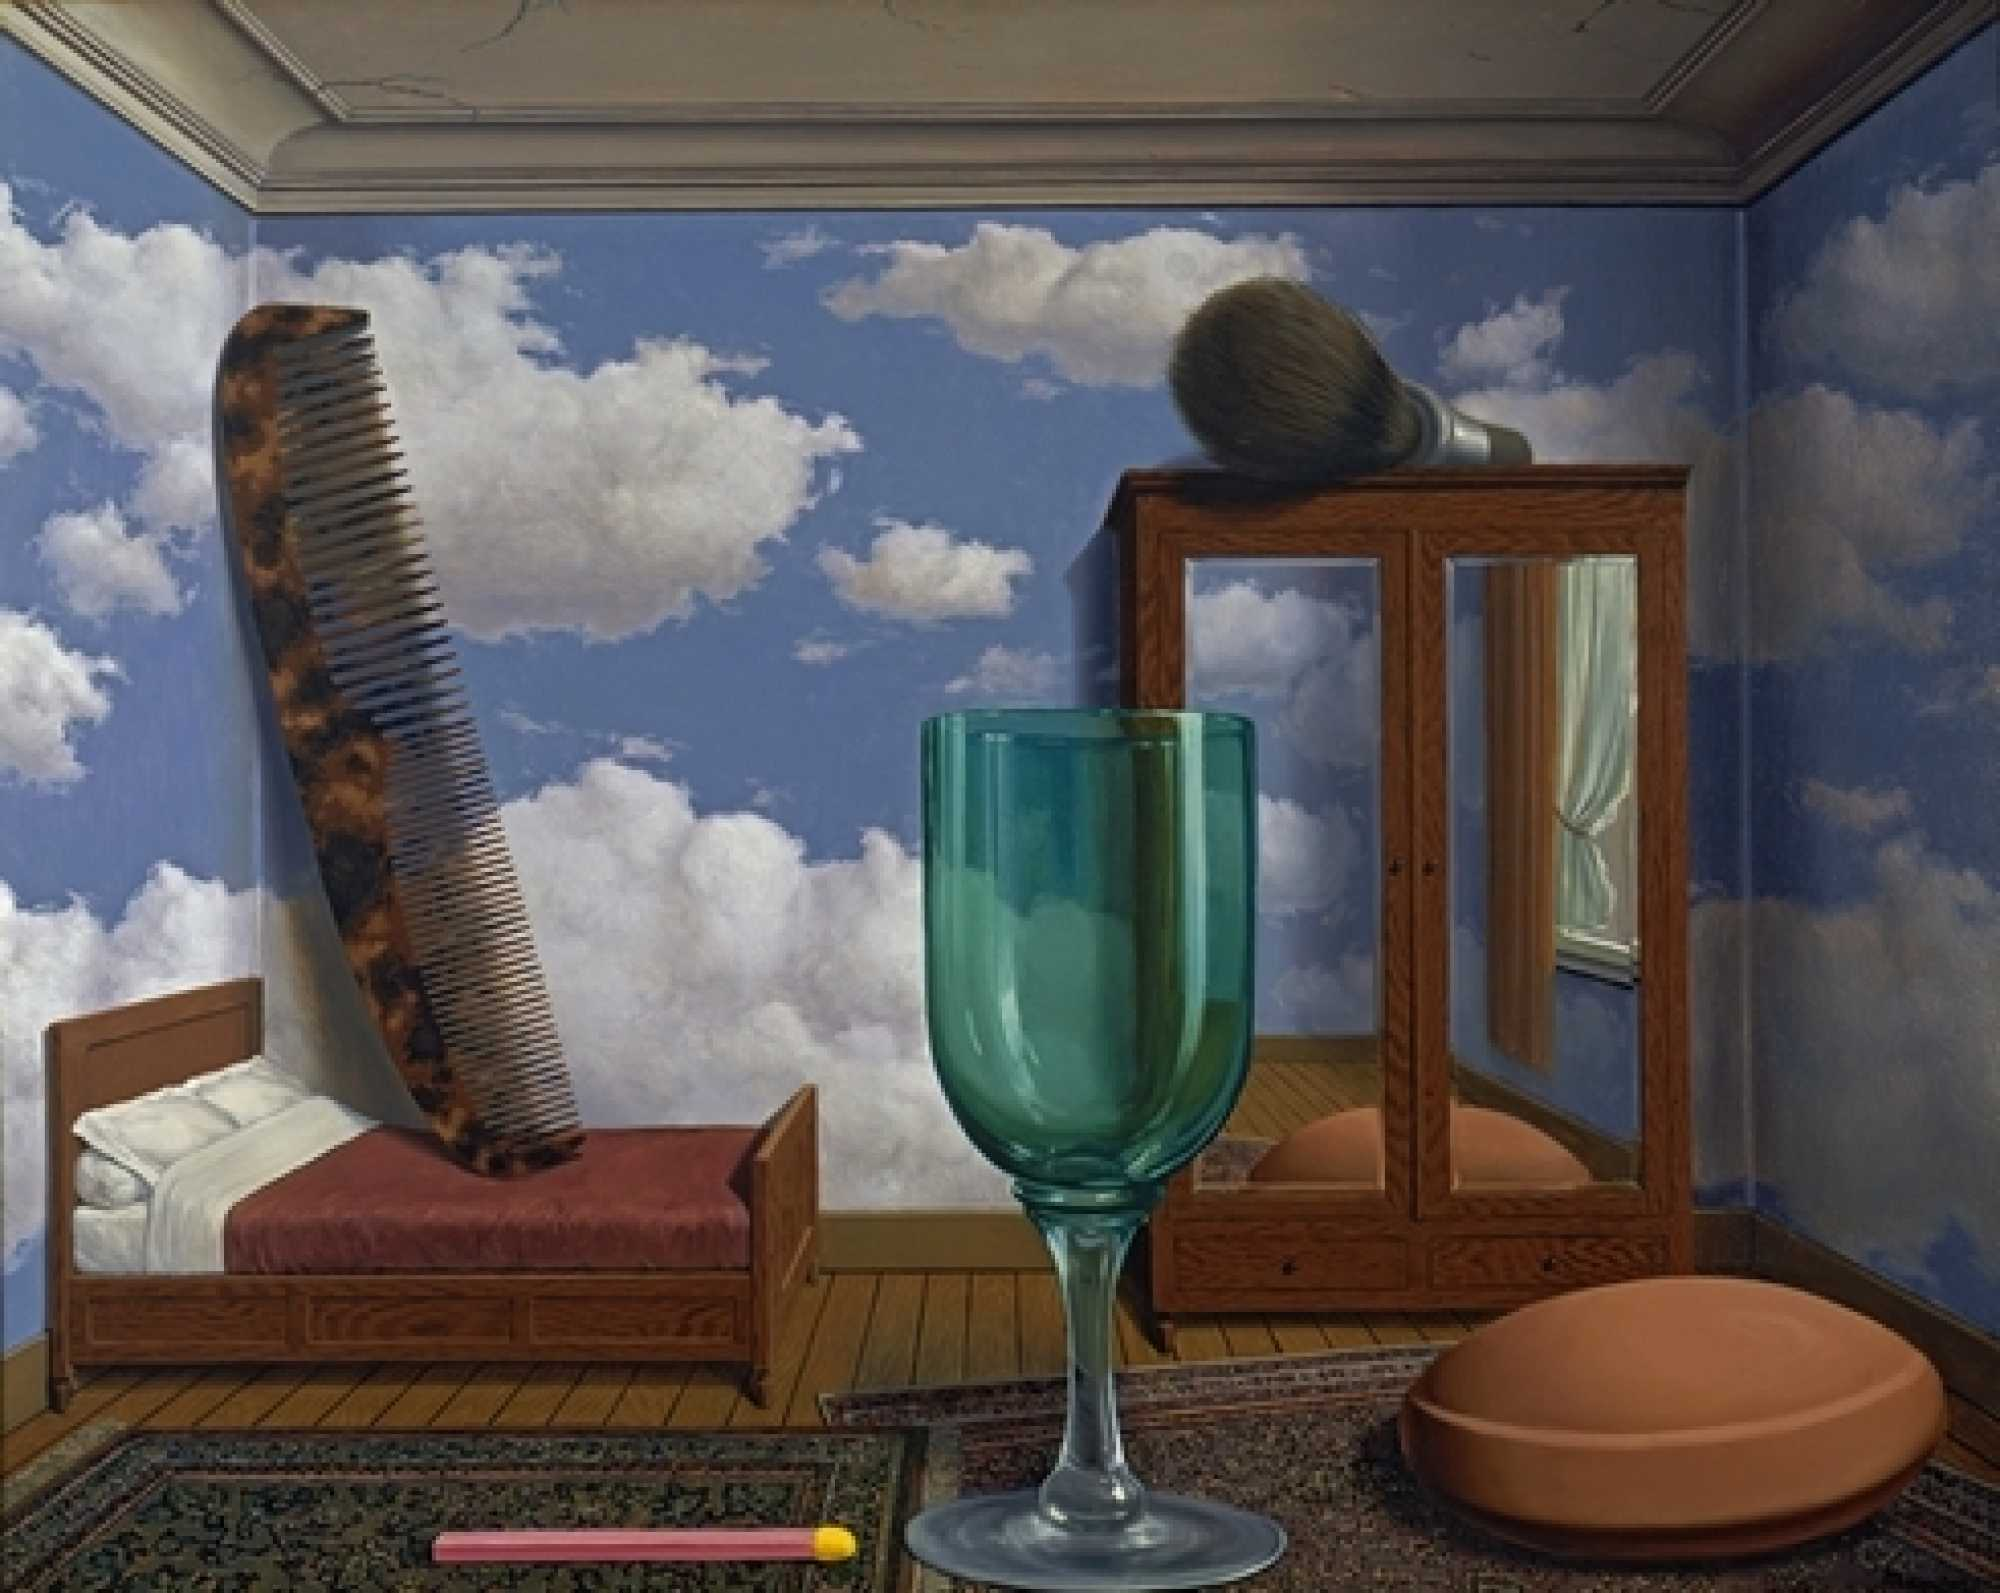 artwork on focus ren eacute magritte personal values royal reneacute magritte personal values 1952 oil on canvas 77